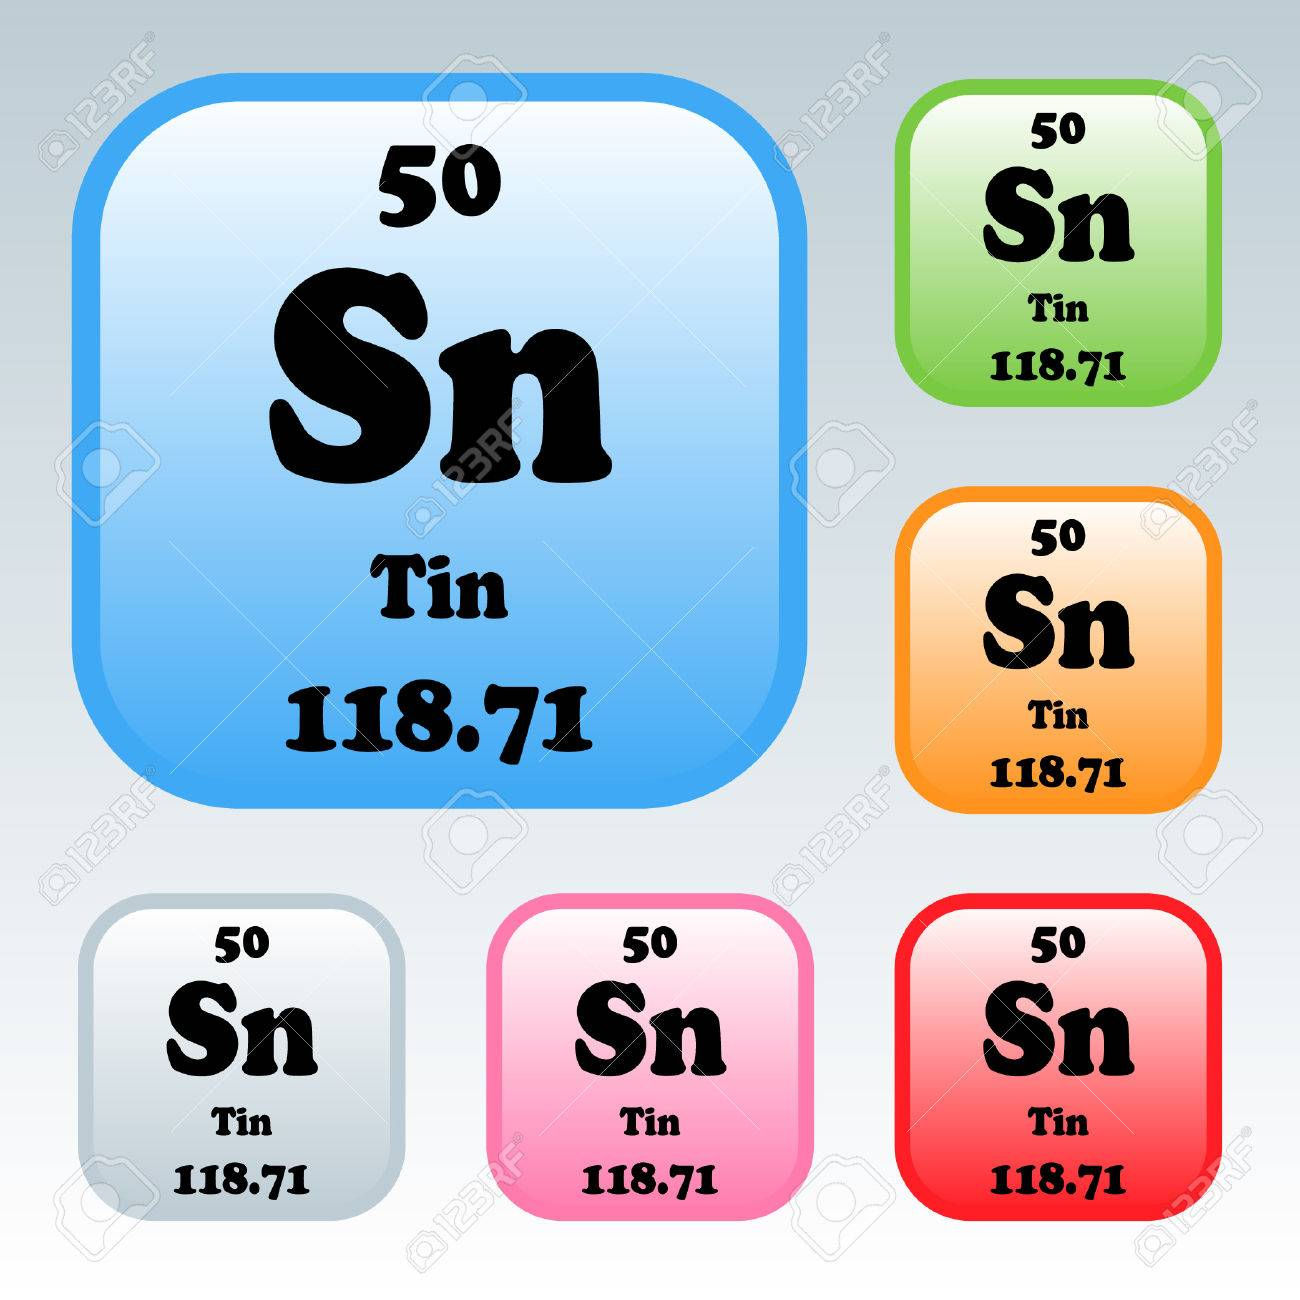 Symbol of tin in the periodic table image collections periodic tin symbol periodic table images periodic table images sn element periodic table images periodic table images gamestrikefo Gallery